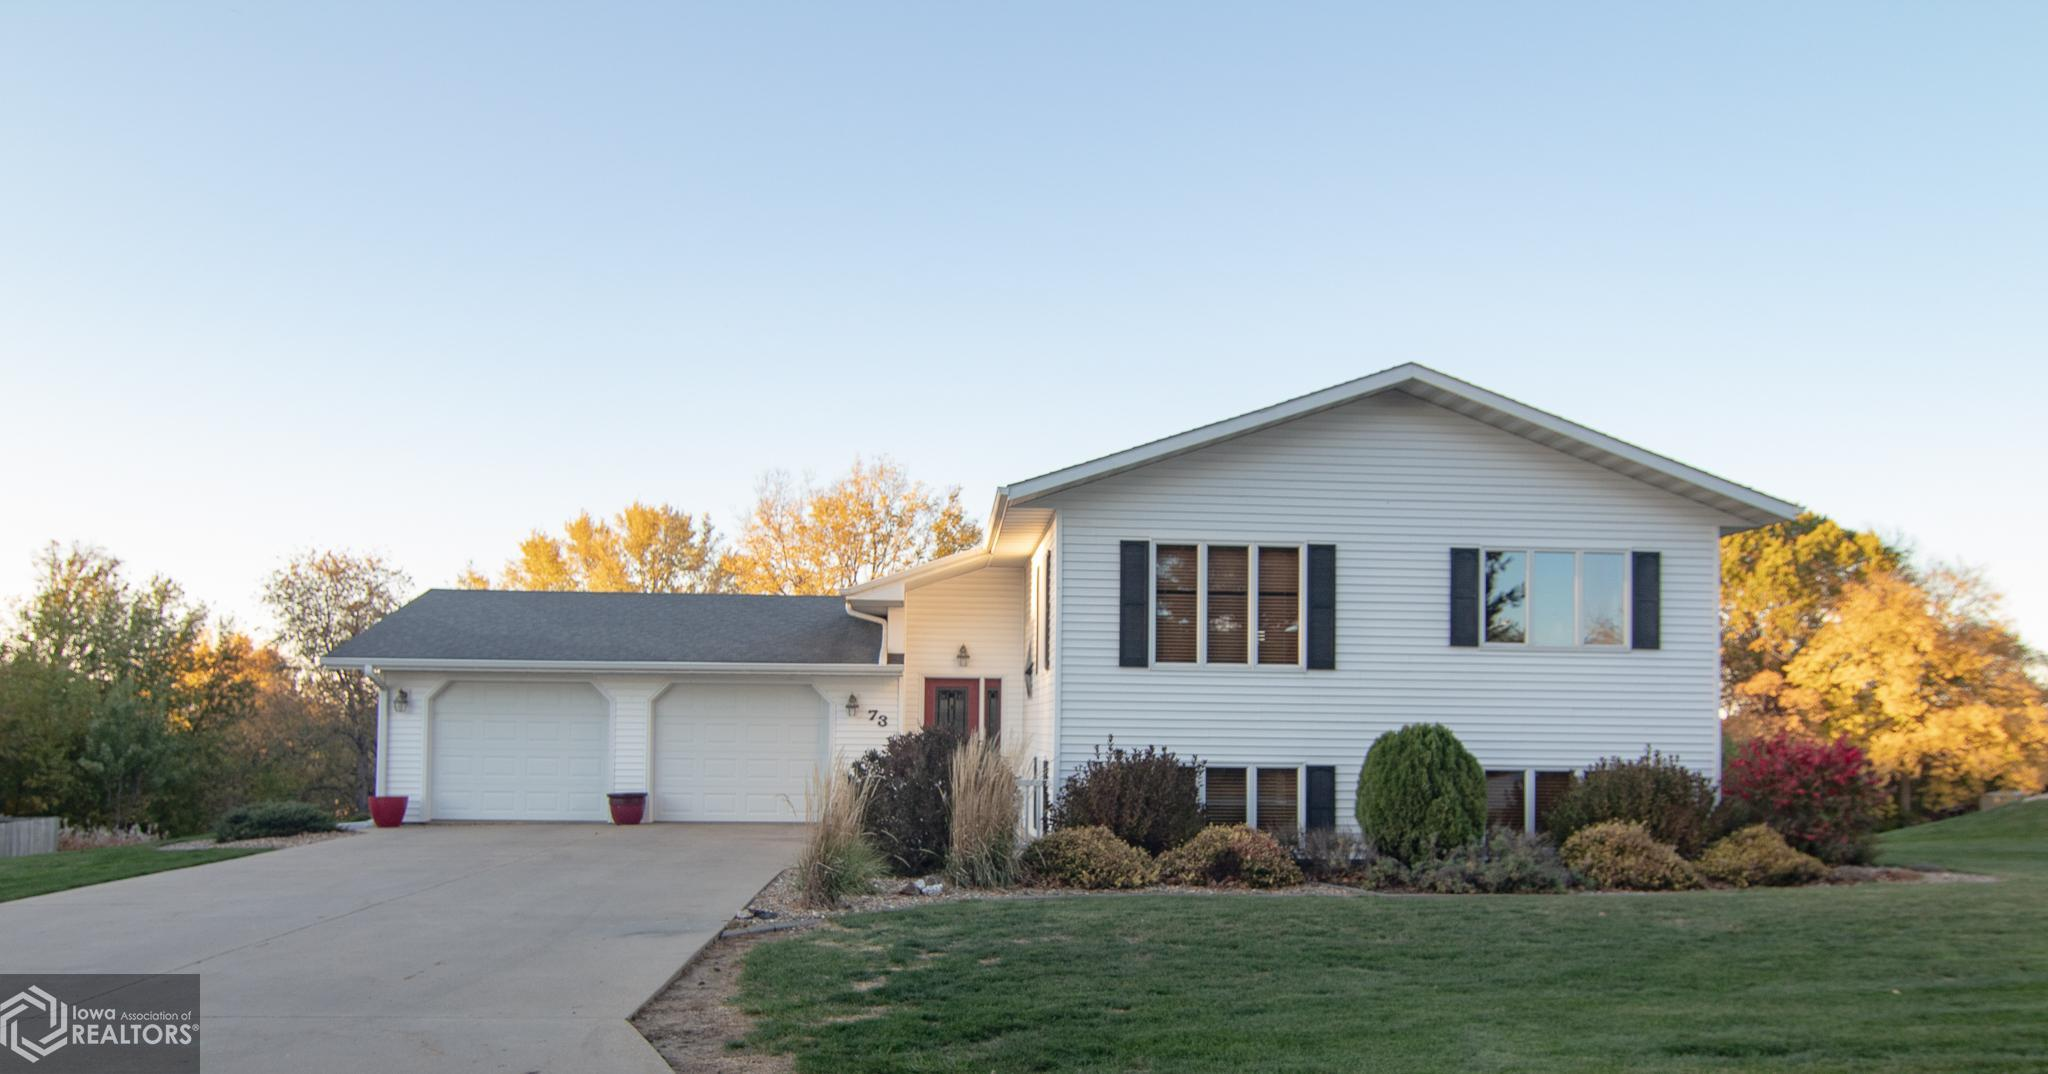 73 Fore Seasons, Grinnell, Iowa 50112-3007, 4 Bedrooms Bedrooms, ,2 BathroomsBathrooms,Single Family,For Sale,Fore Seasons,5678817